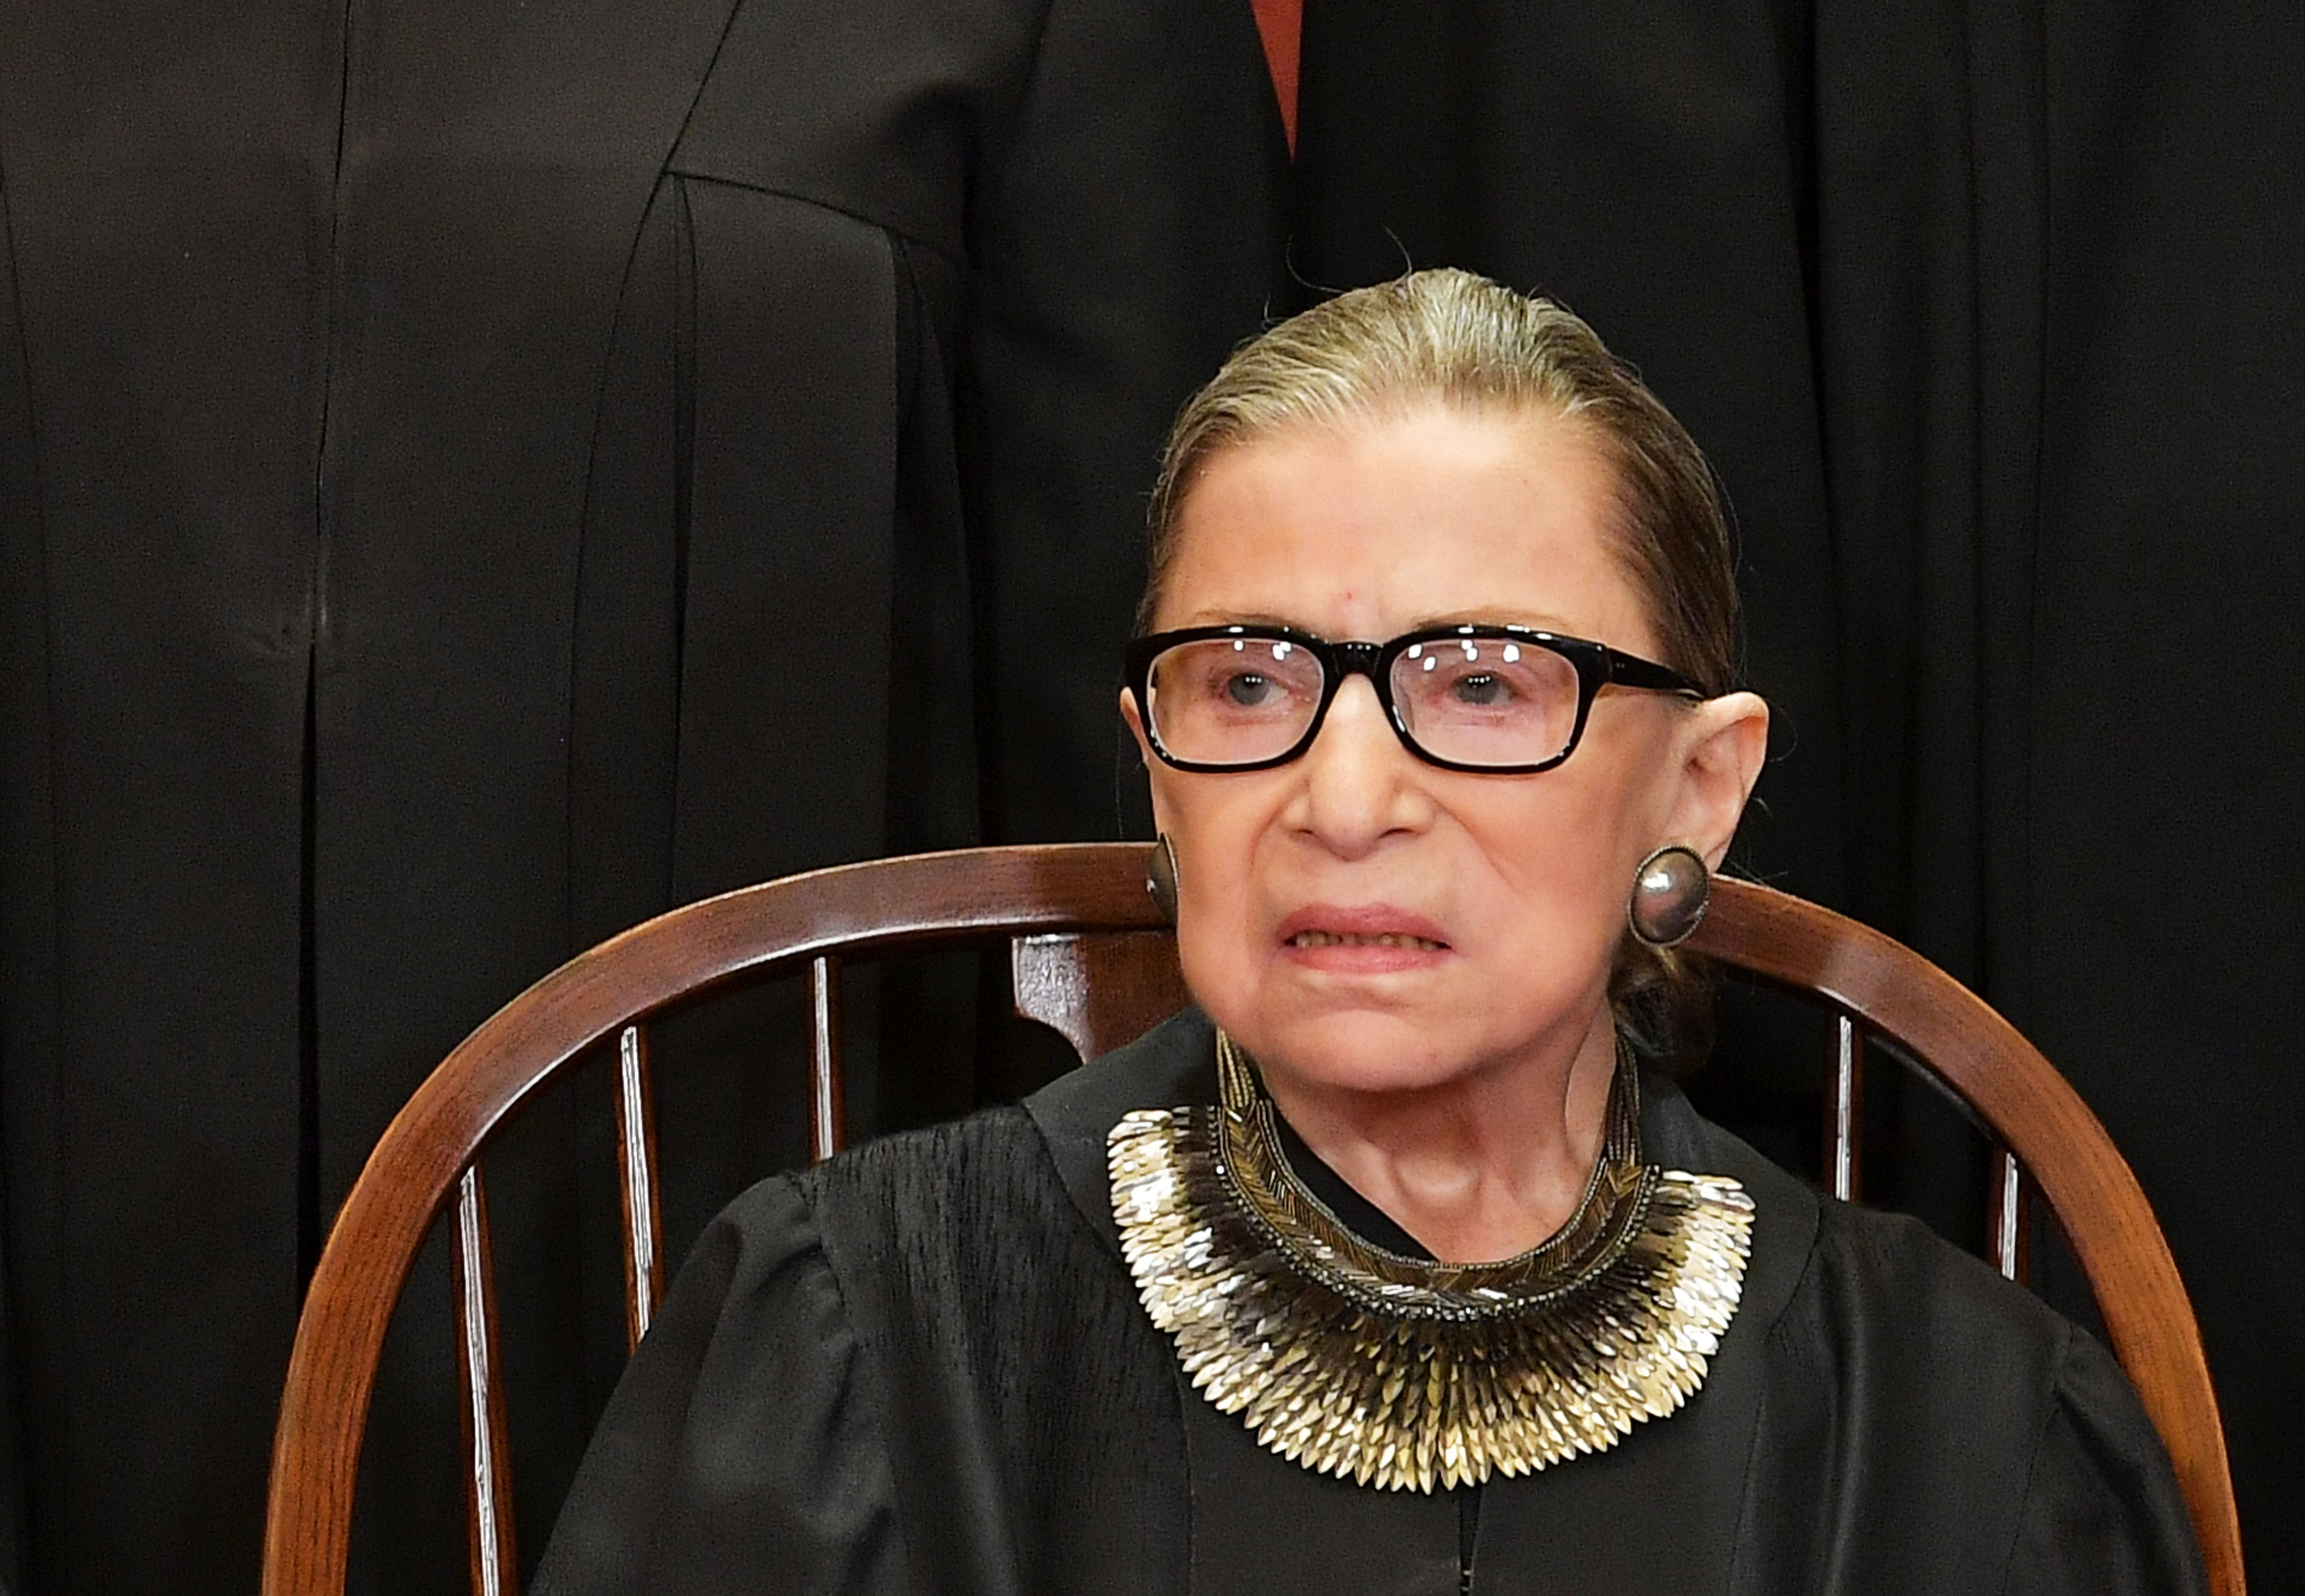 Bill Clinton Wishes Ruth Bader Ginsburg Could On Supreme Court 'Forever'